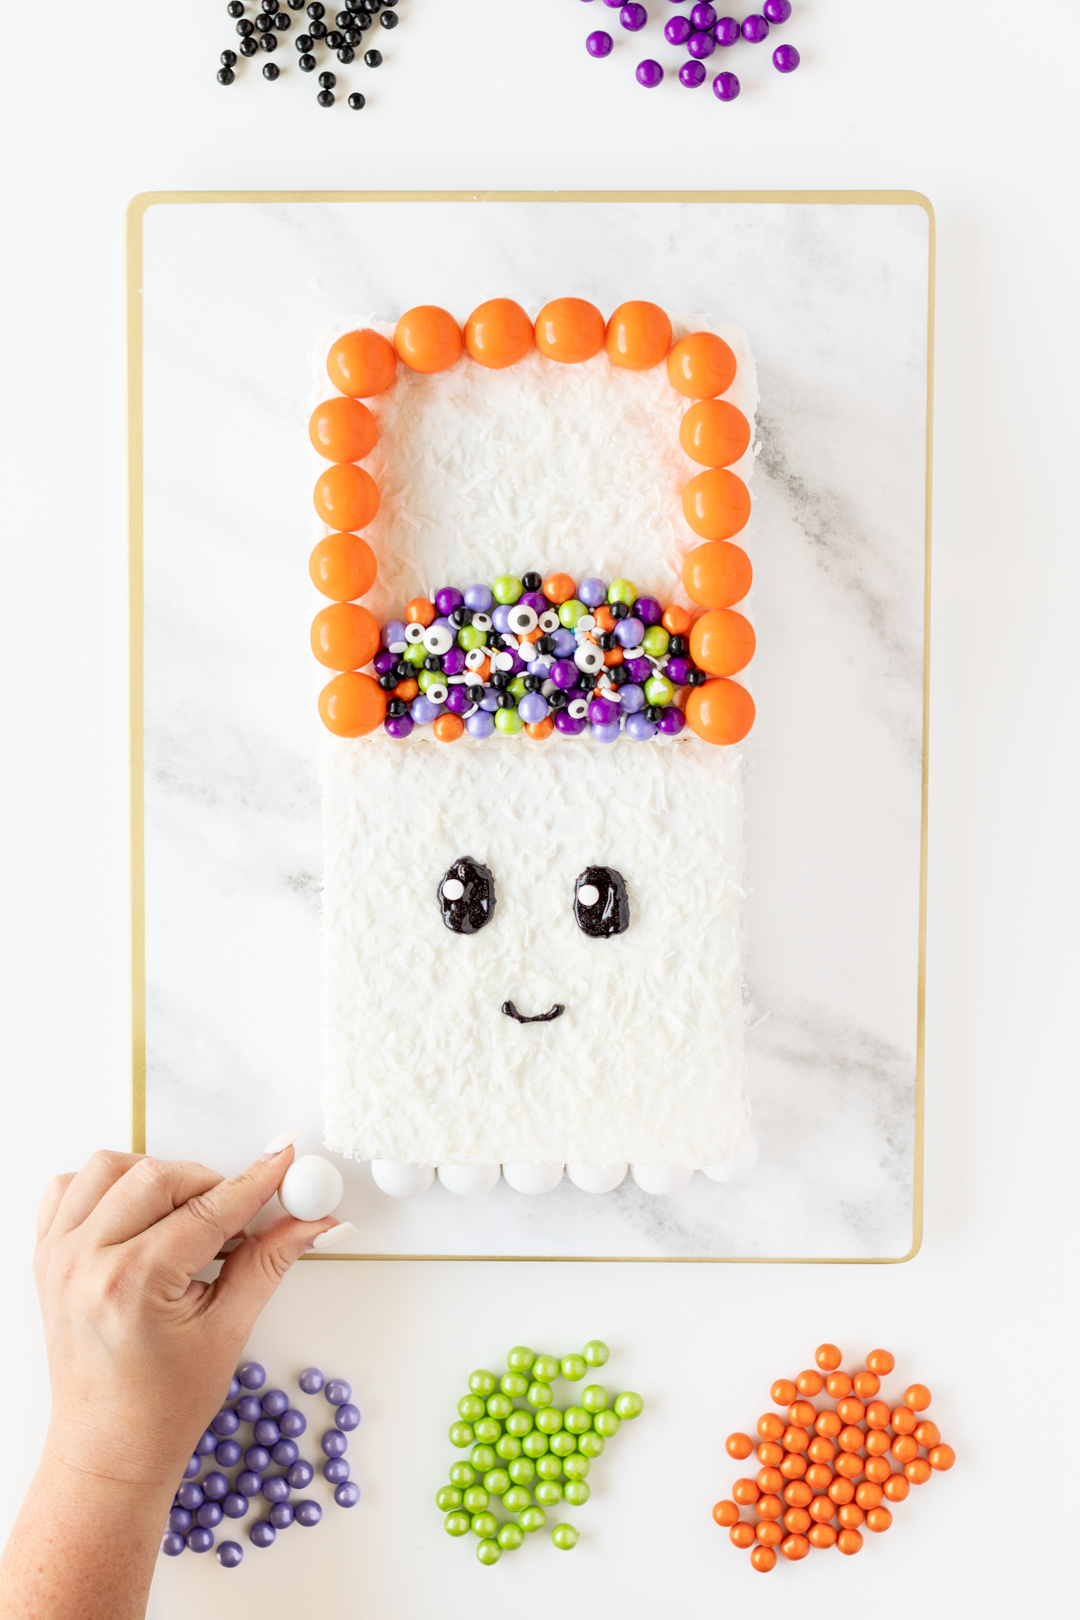 Adding gumballs to decorate a Halloween cake.